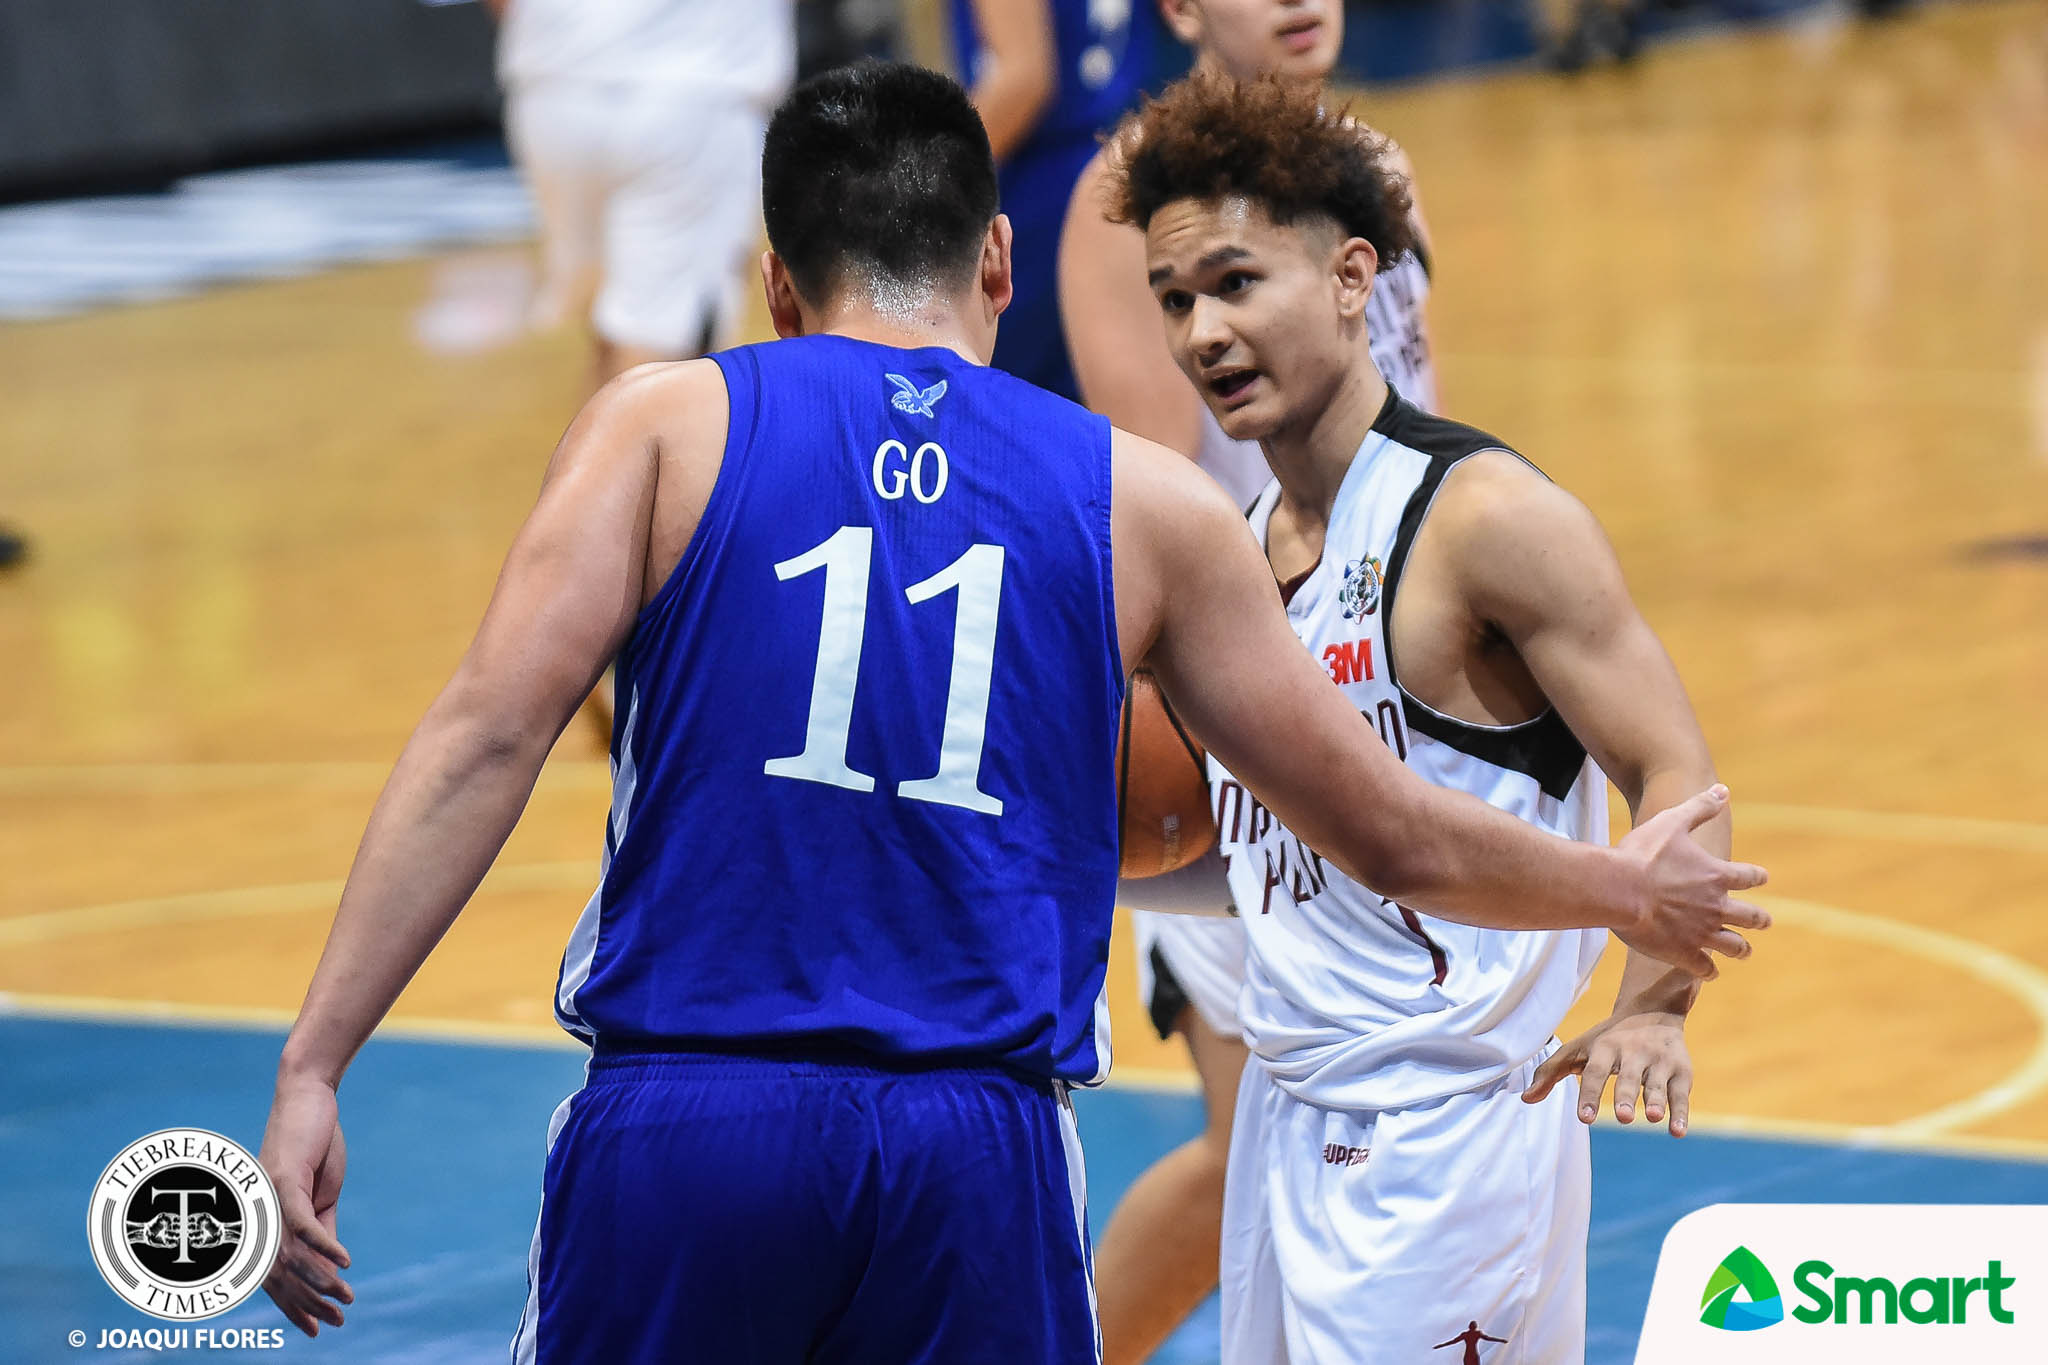 Tiebreaker Times No excuses for UP after Game 1 loss, says Juan Gomez de Liano Basketball News UAAP UP  UP Men's Basketball UAAP Season 81 Men's Basketball UAAP Season 81 Matt Nieto Juan Gomez De Liano